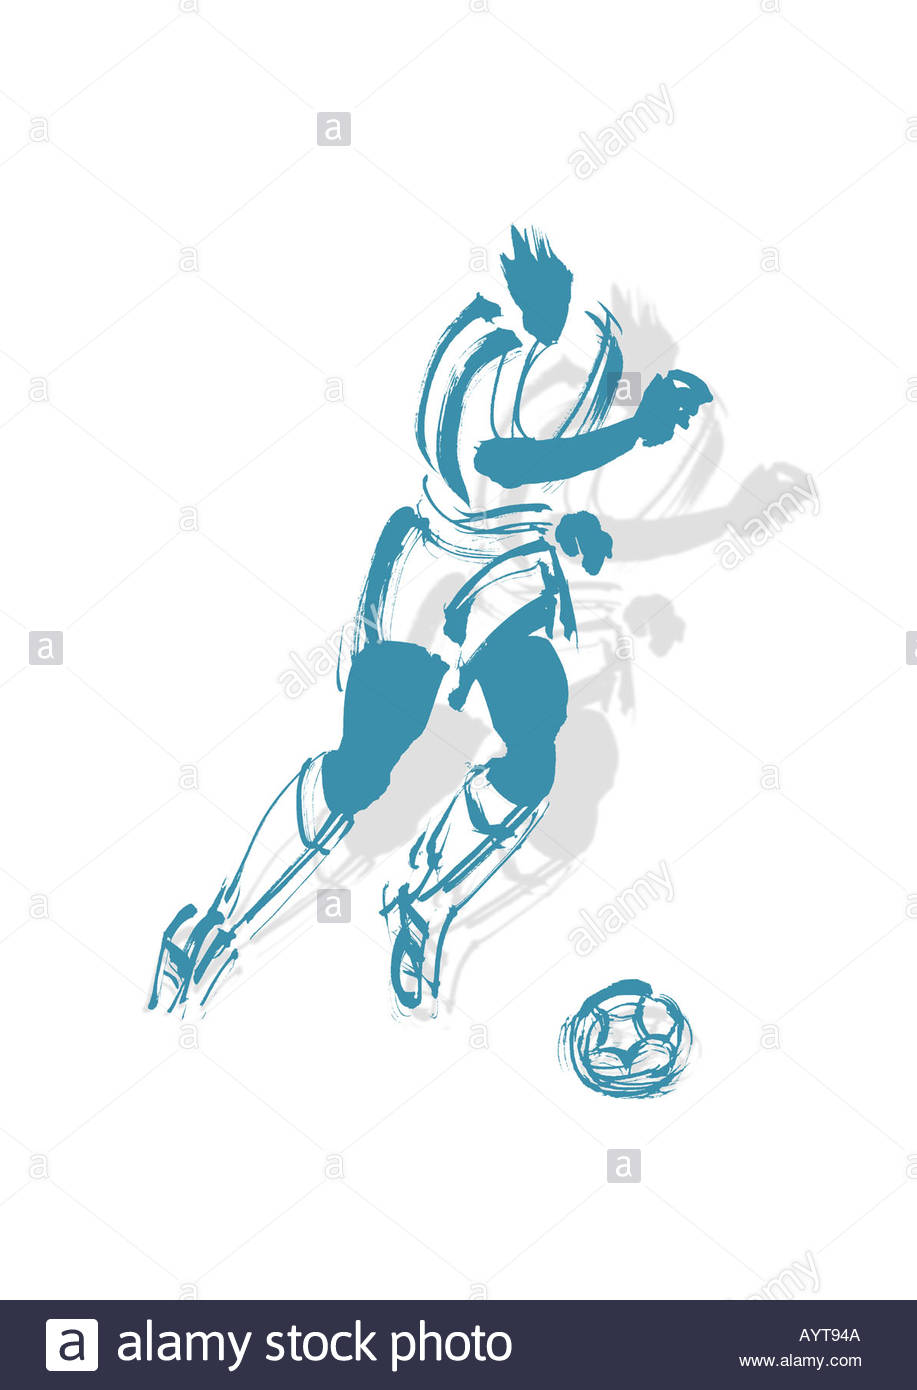 Artistic Color Brush Work Illustration Of A Soccer Player Stock.